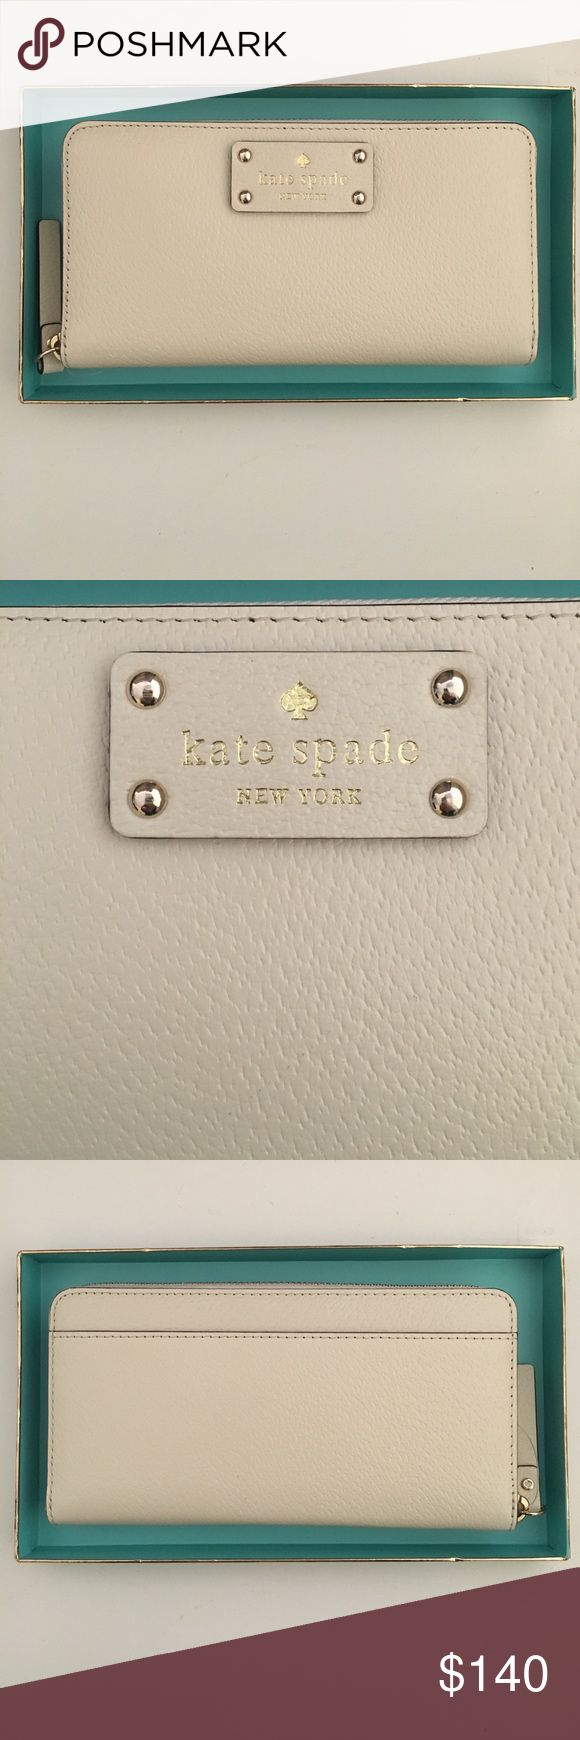 Kate Spade Neda Wallet Brand New. Leather. Comes with tags & box. Outside color is porcelain, inside compartments are made of nude leather & pink Kate Spade print fabric. No trades. Will consider offers. kate spade Bags Wallets